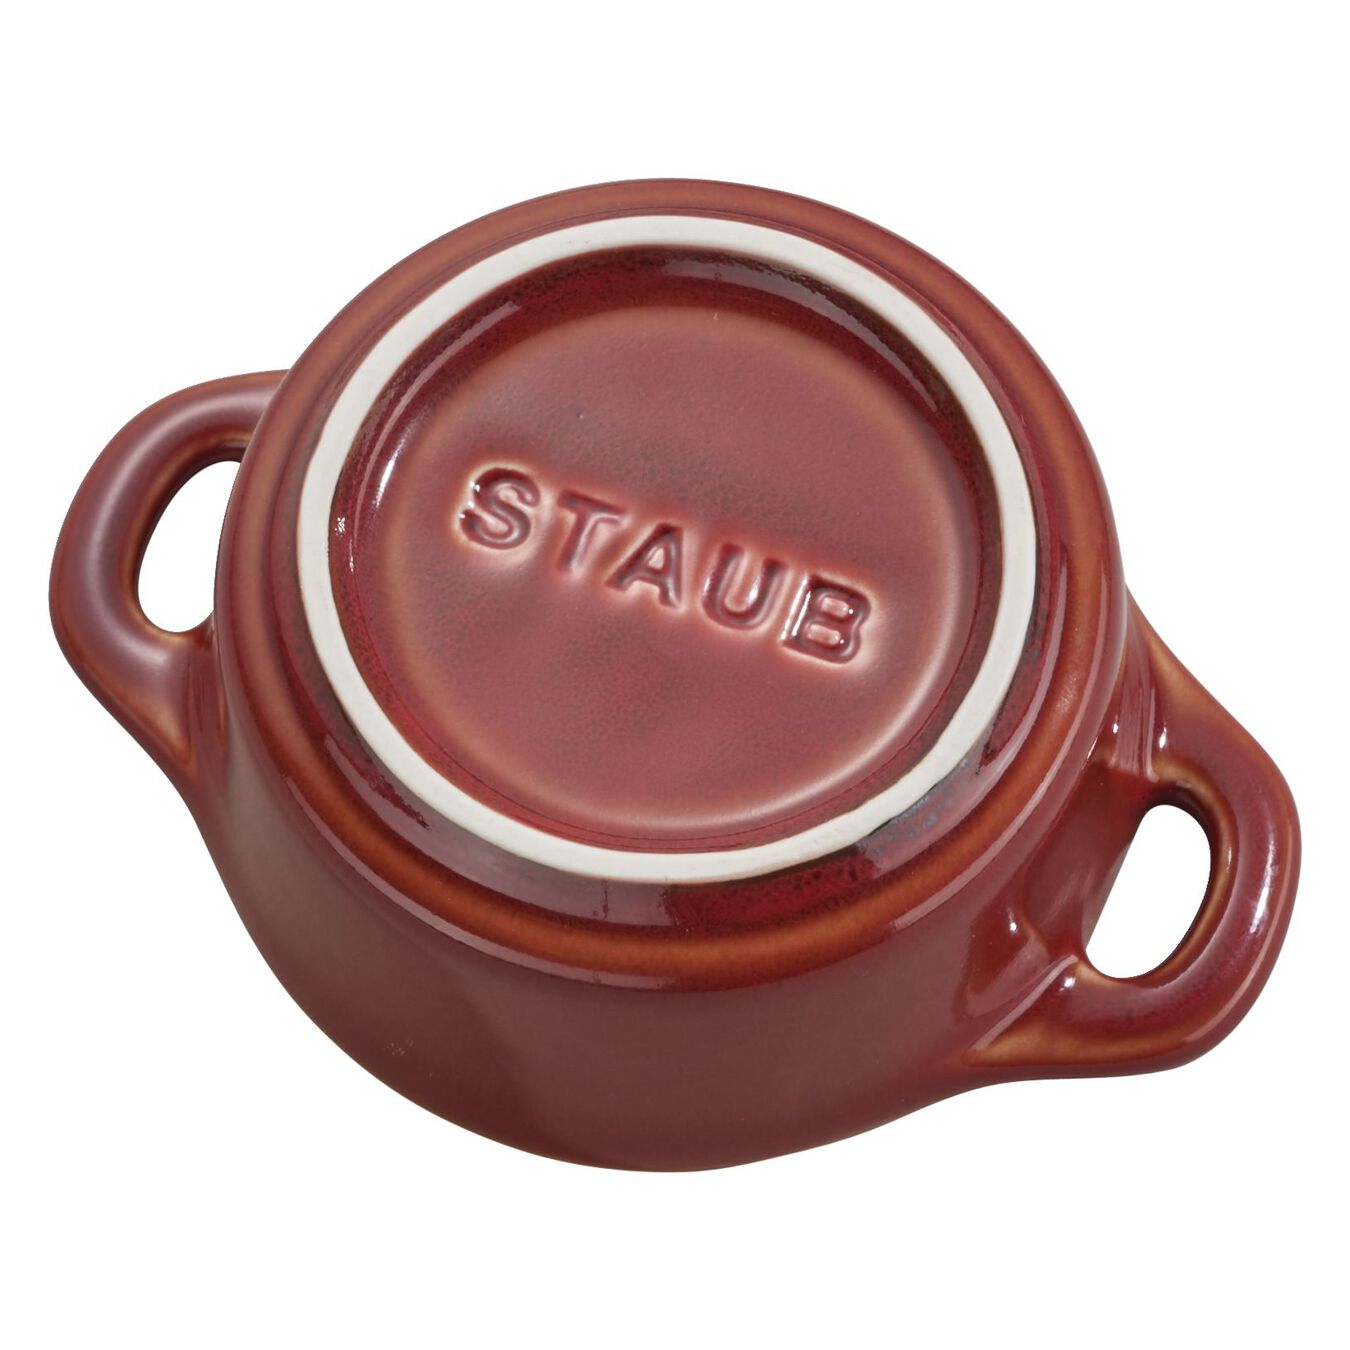 3-pc Mini Round Cocotte Set - Rustic Red,,large 4